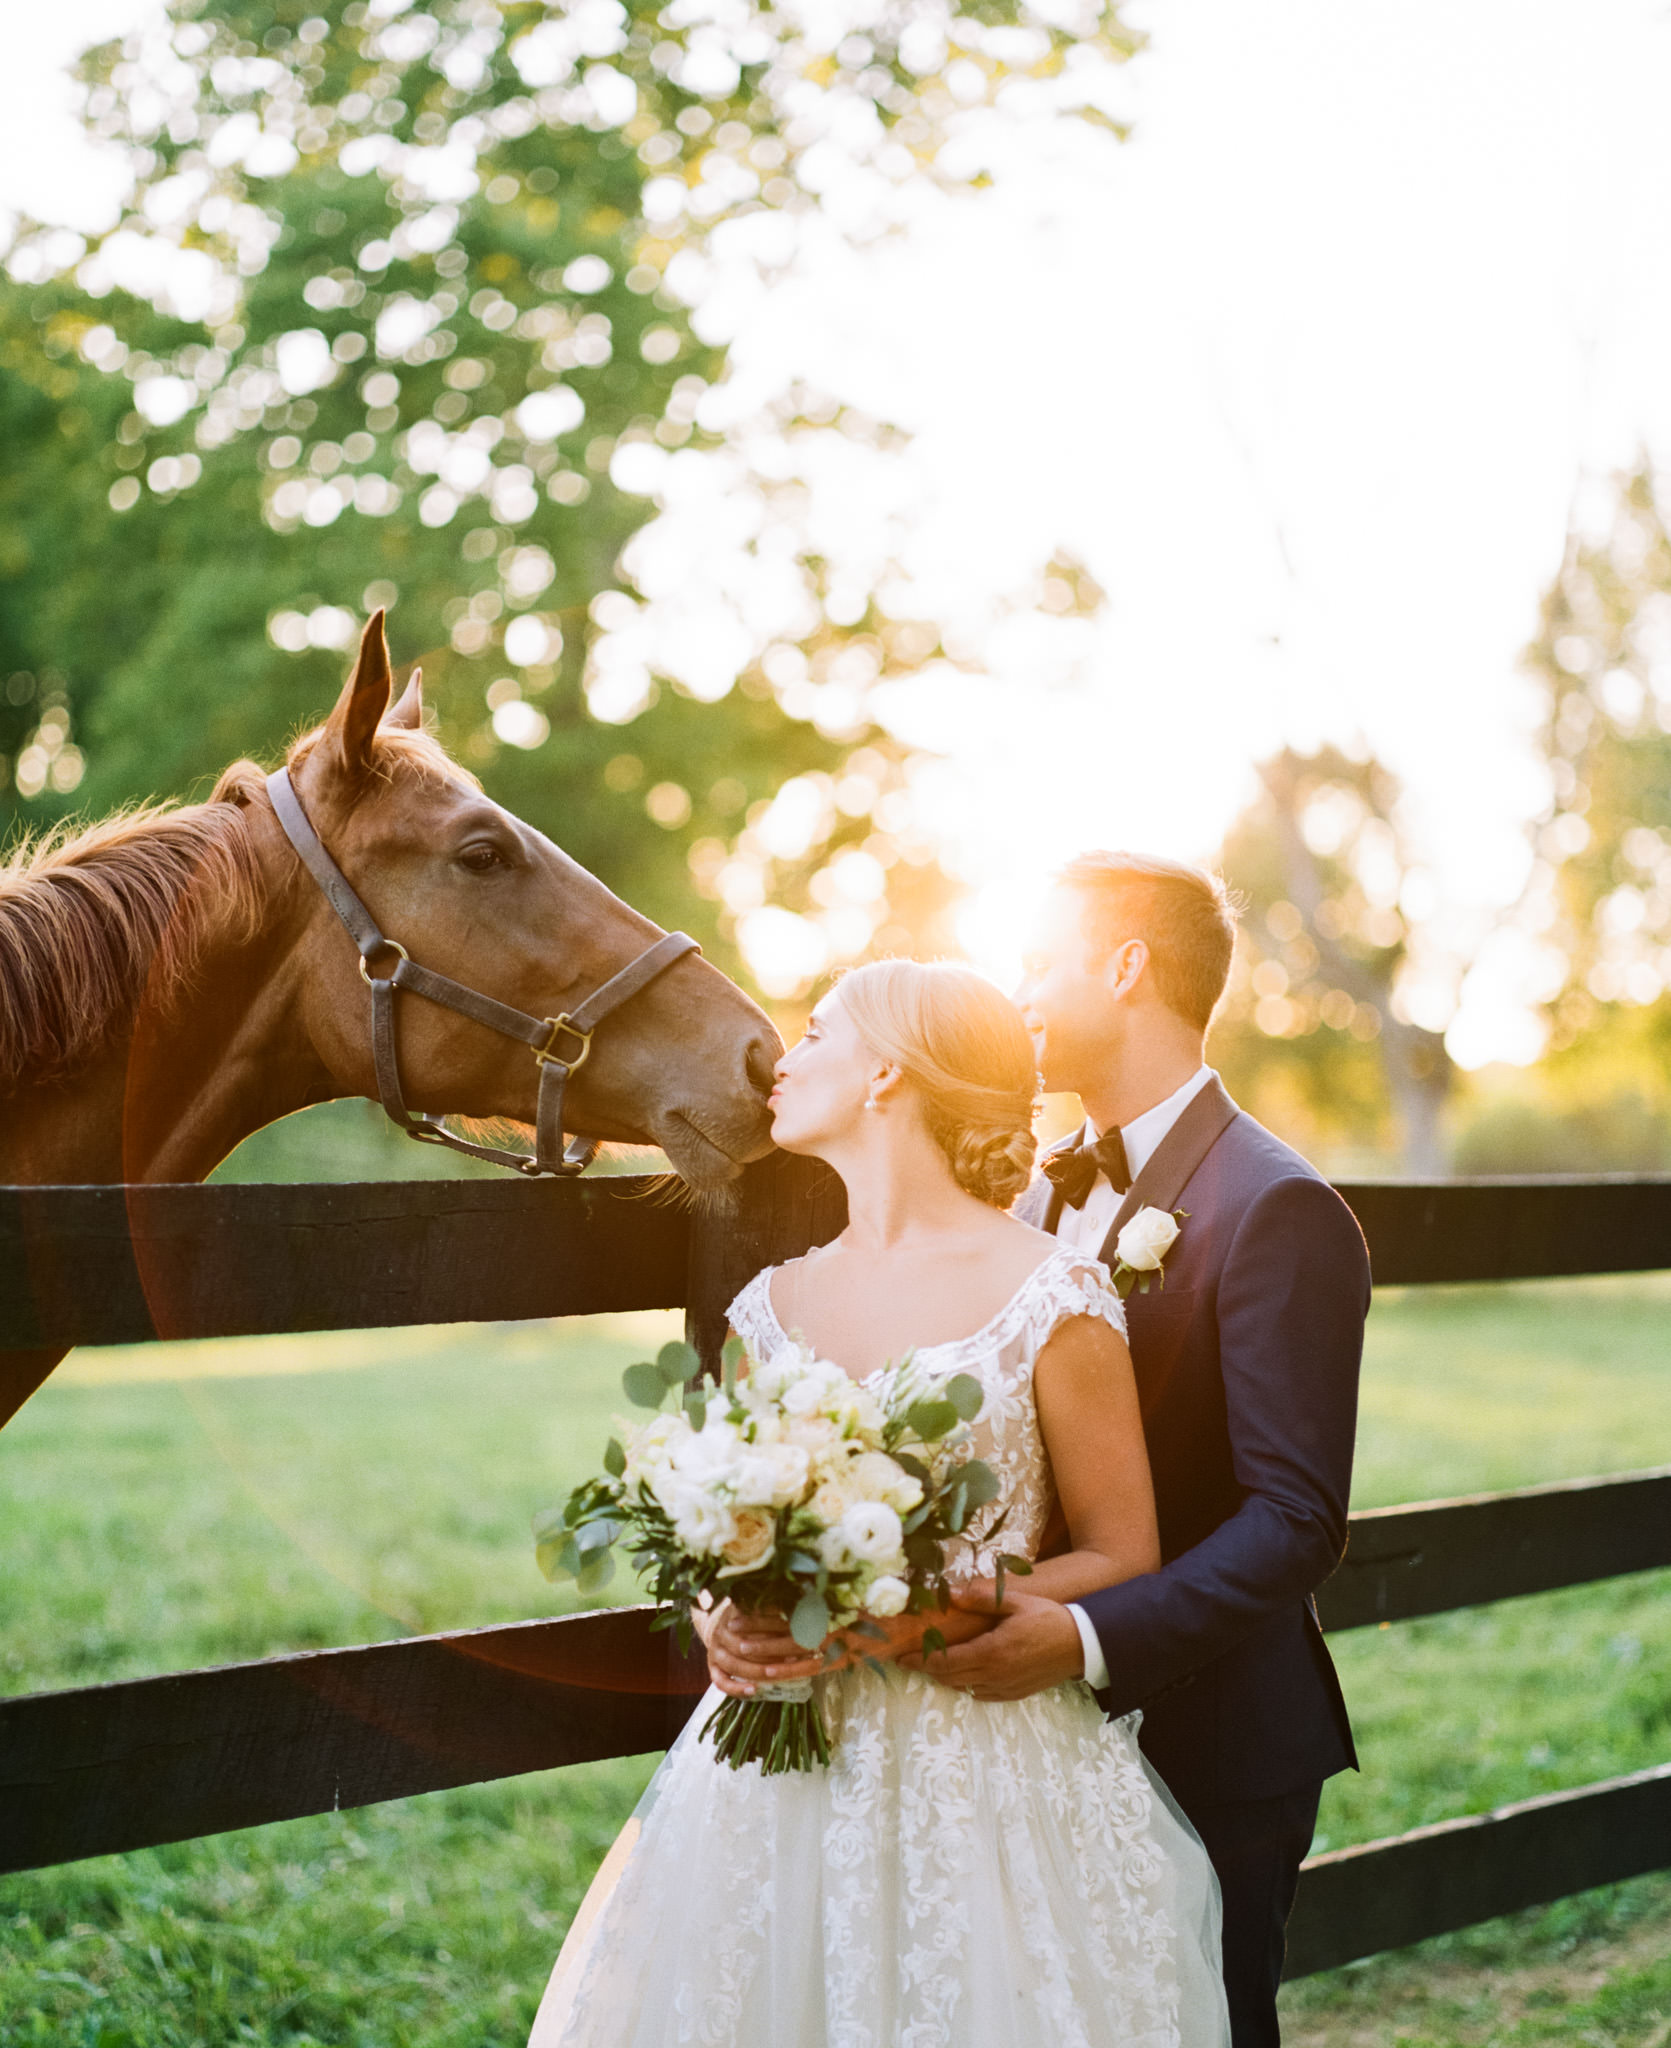 Portra 800 Example: Sunset image from Jon & Emily's  Polo Barn Wedding in Lexington Ky  taken with Pentax 67 and Portra 800 rated at 640 ISO